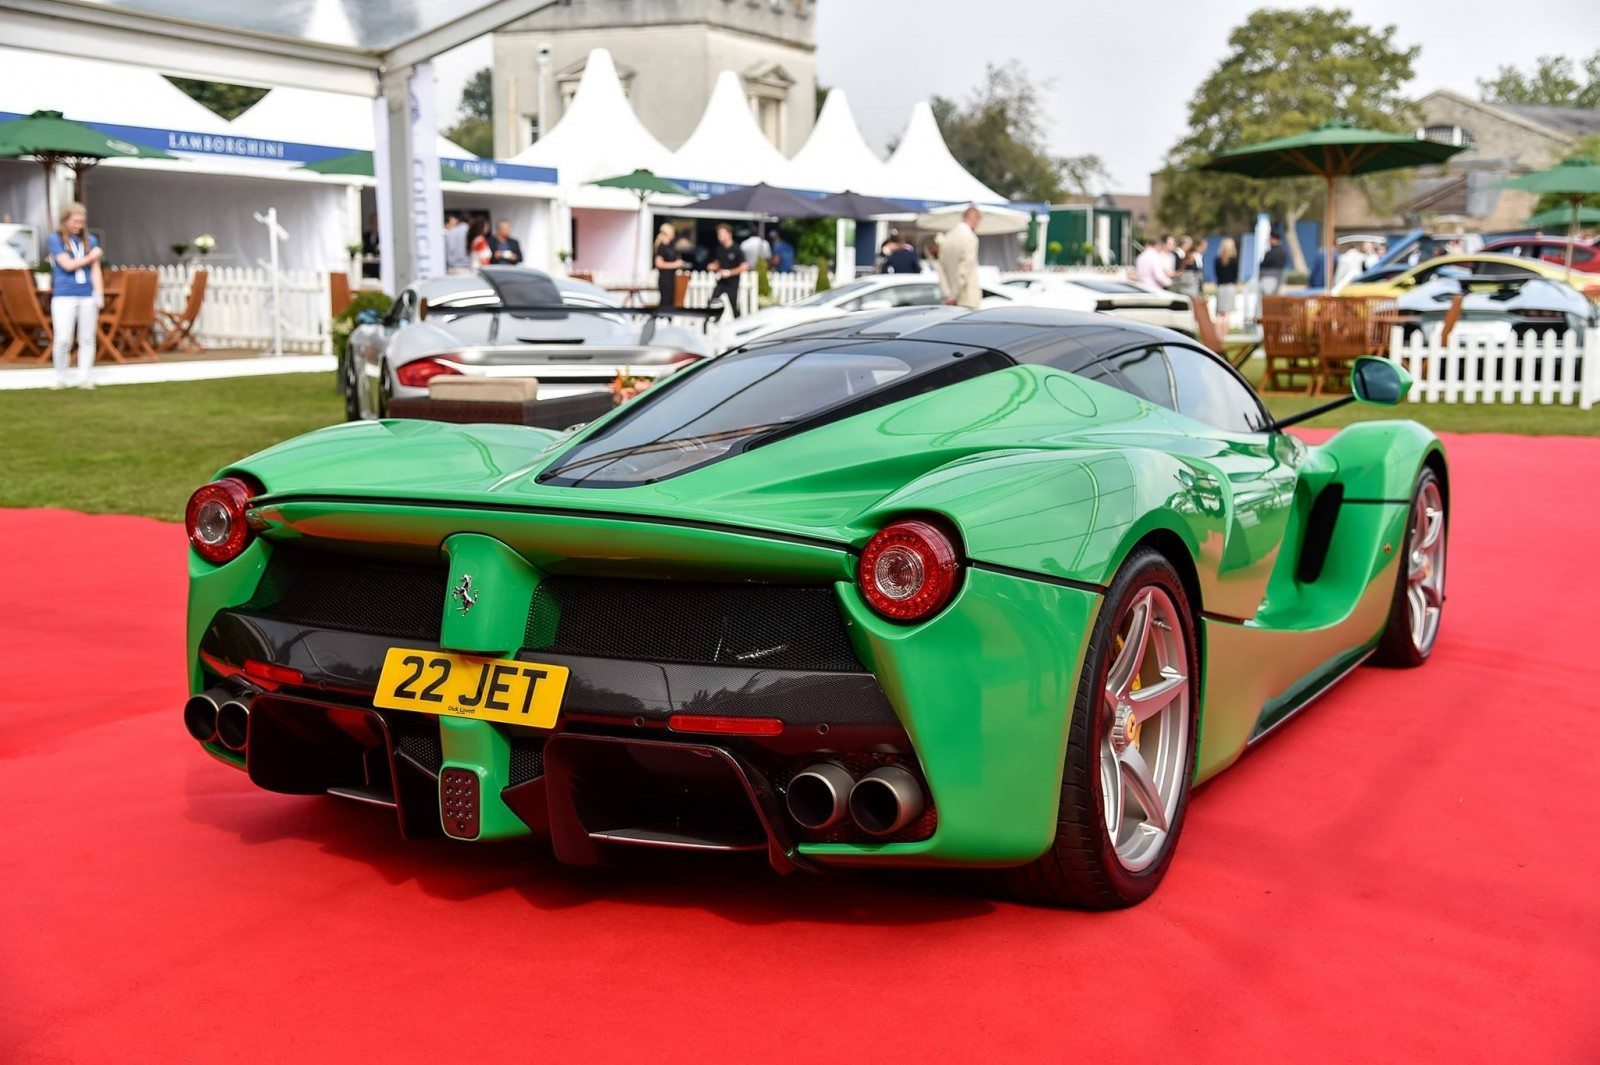 Ferrari 2015 Goodwood 4